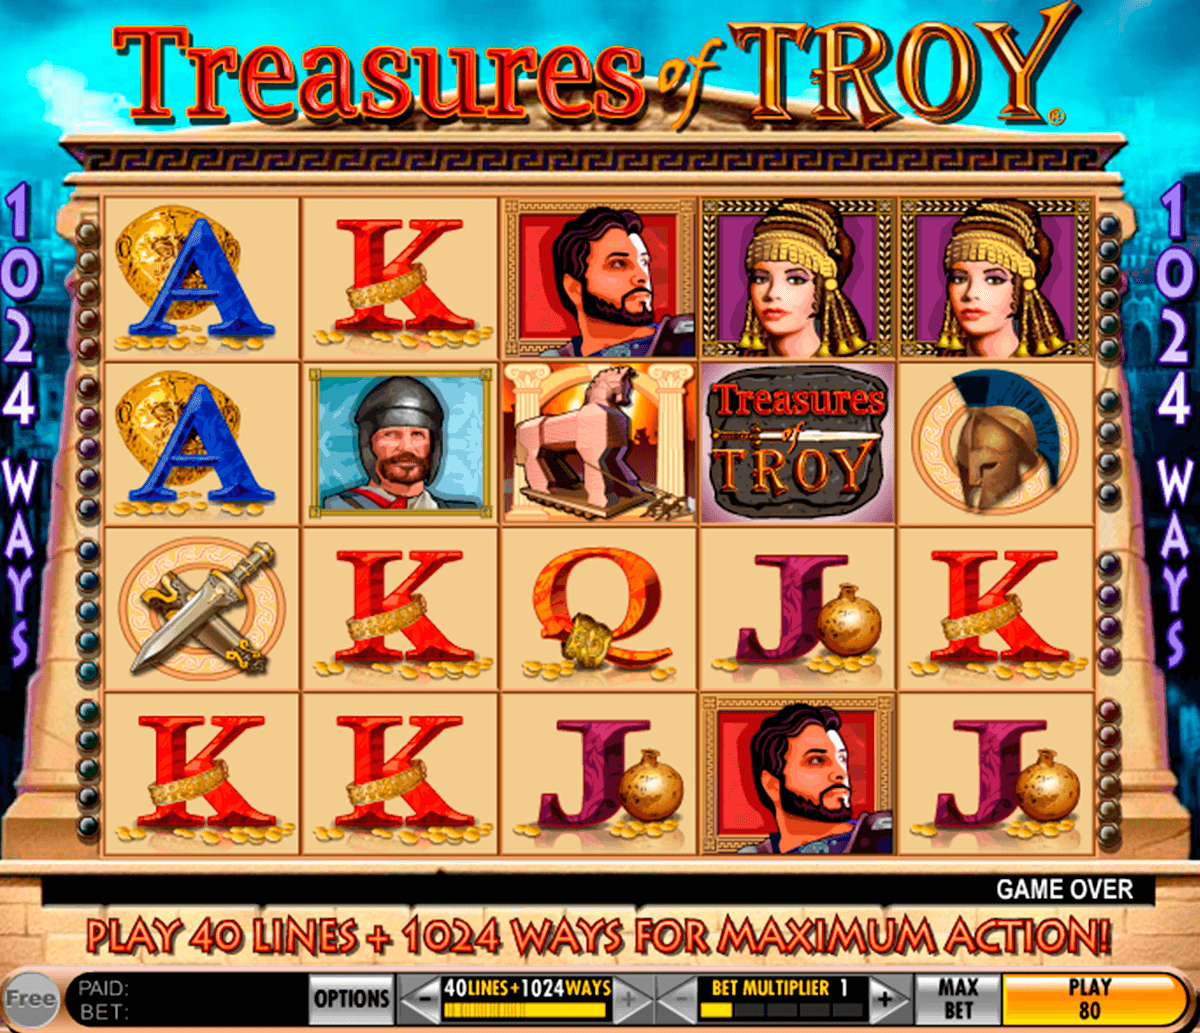 treasures of troy igt casino